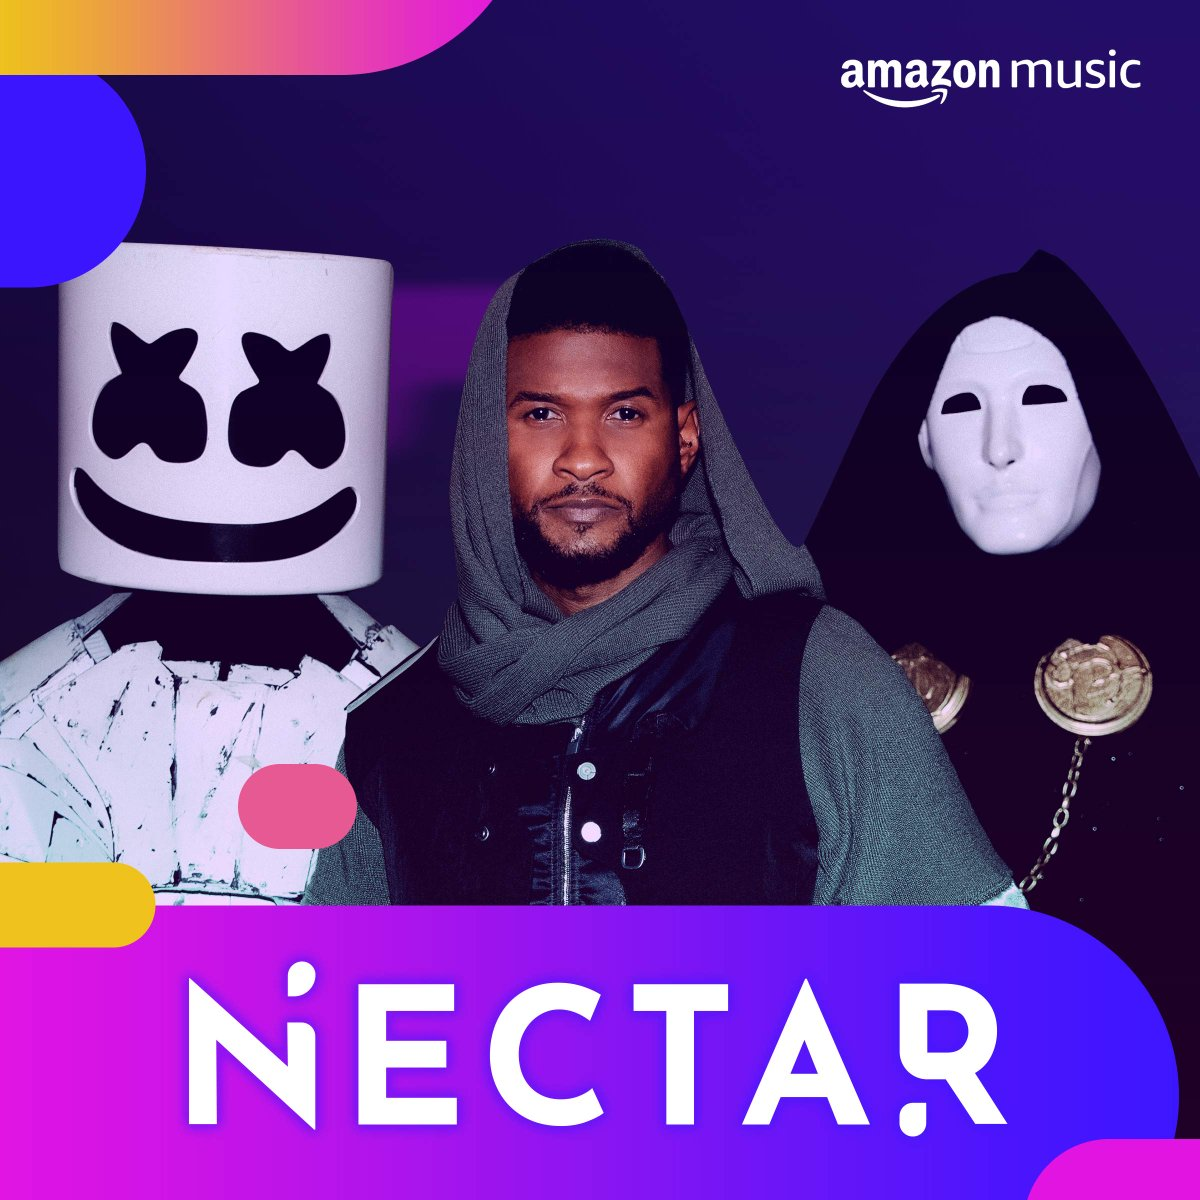 #TooMuch is on @amazonmusic's Nectar playlist, check it out. @marshmellomusic #imanbek https://t.co/XpQ4mLObae https://t.co/u3MzbDJAZD